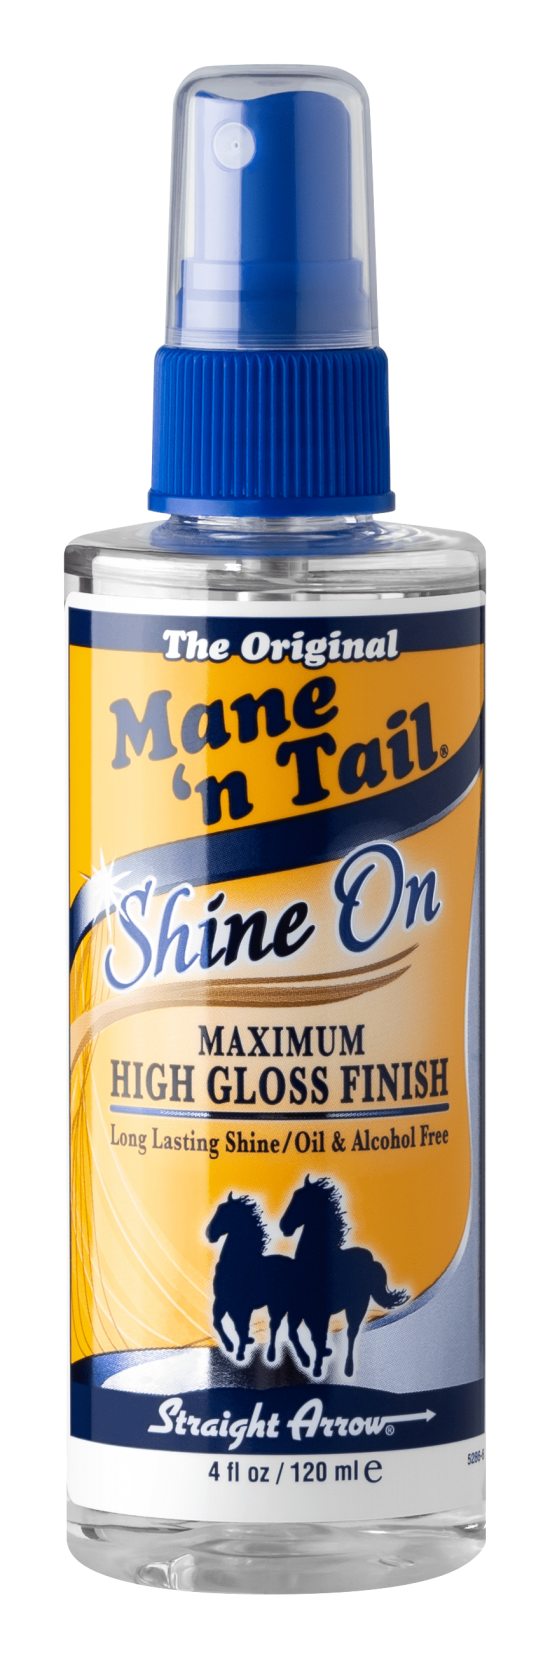 Shine On 4 oz spray bottle